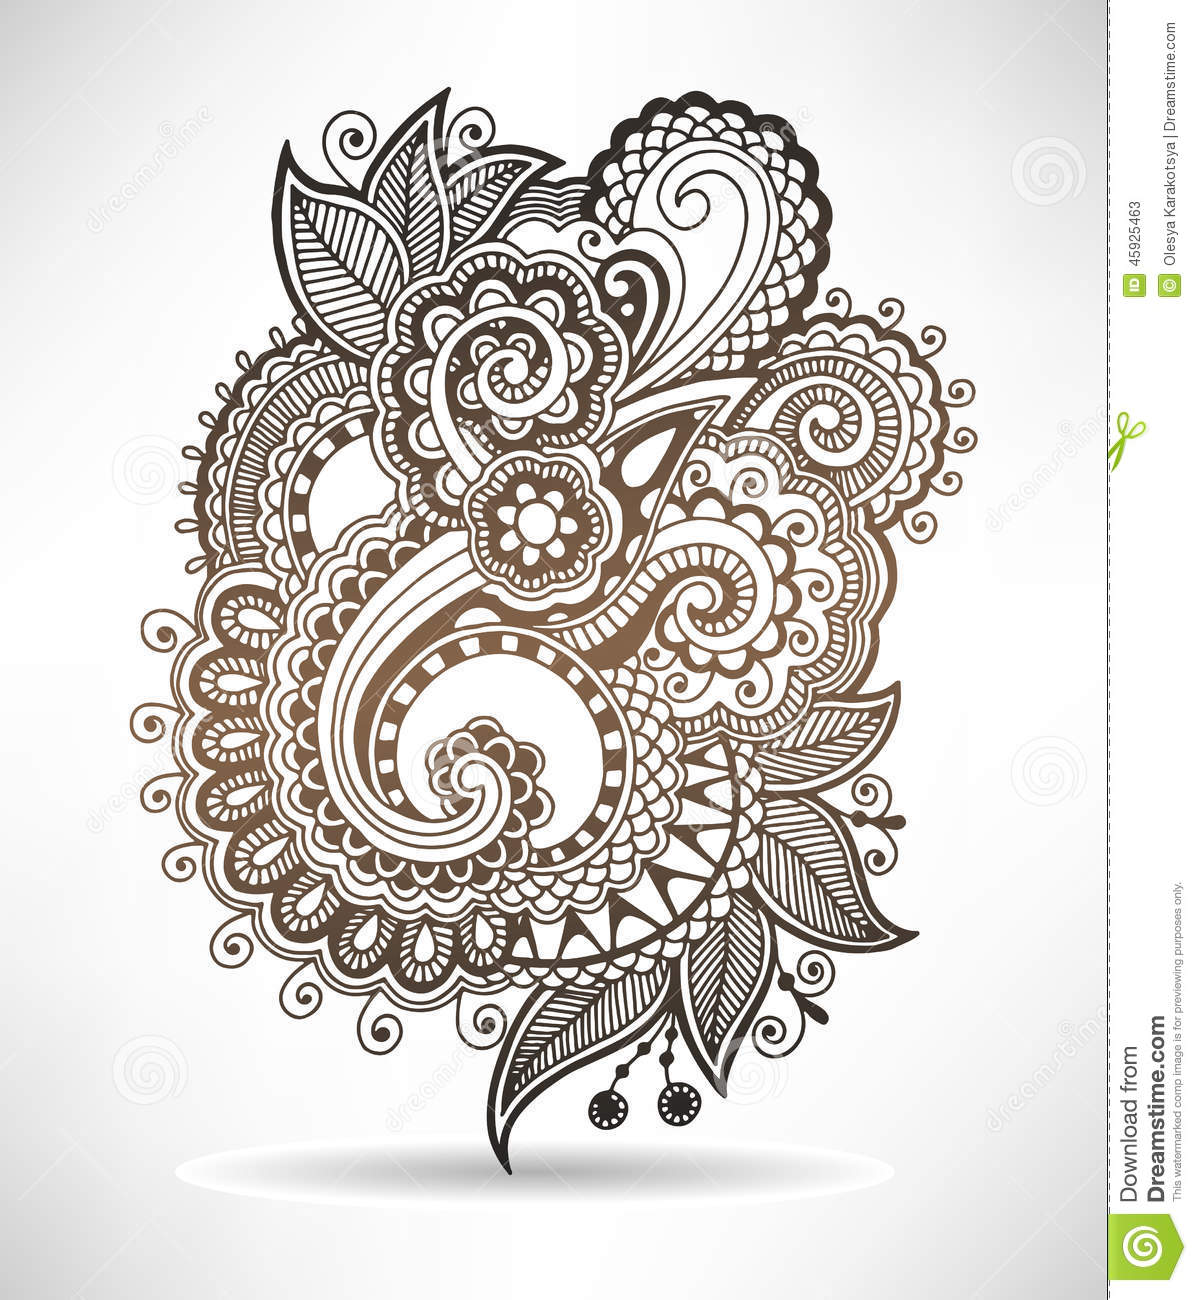 Line Art Media Design : Line art ornate flower design ukrainian ethnic stock